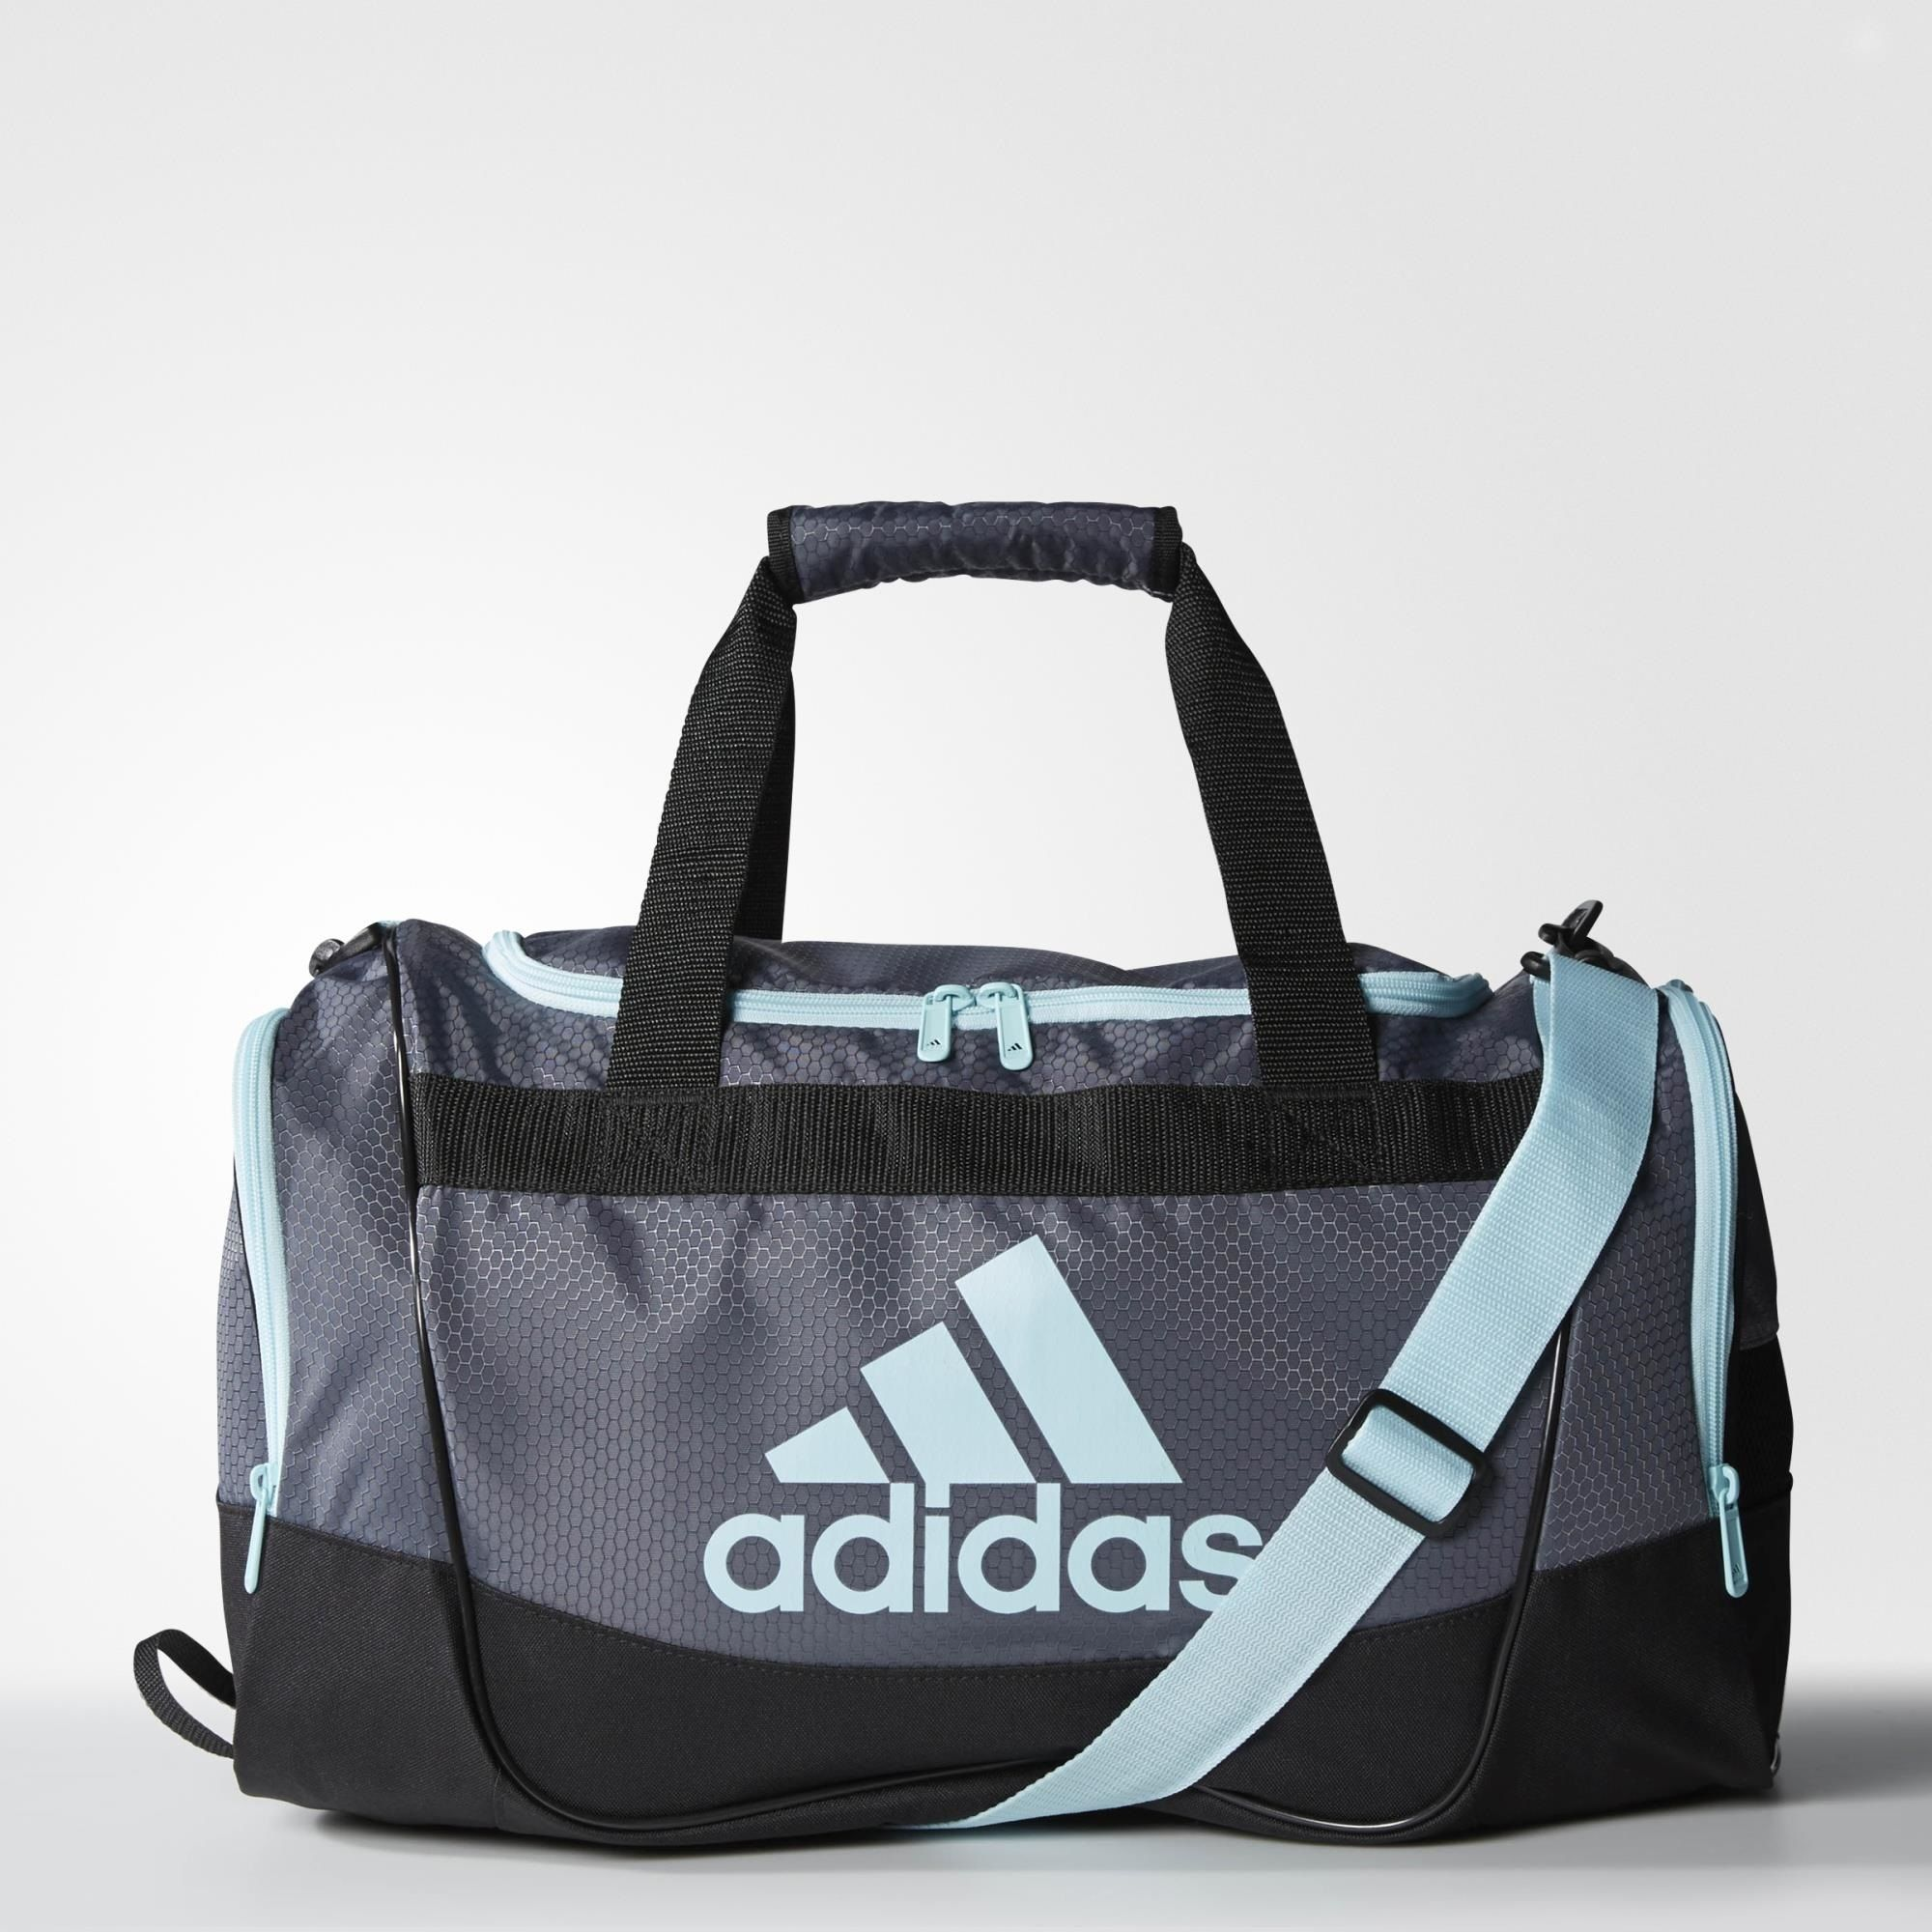 cc01ad1498de adidas Defender 2 Duffel Bag Small - ONIX